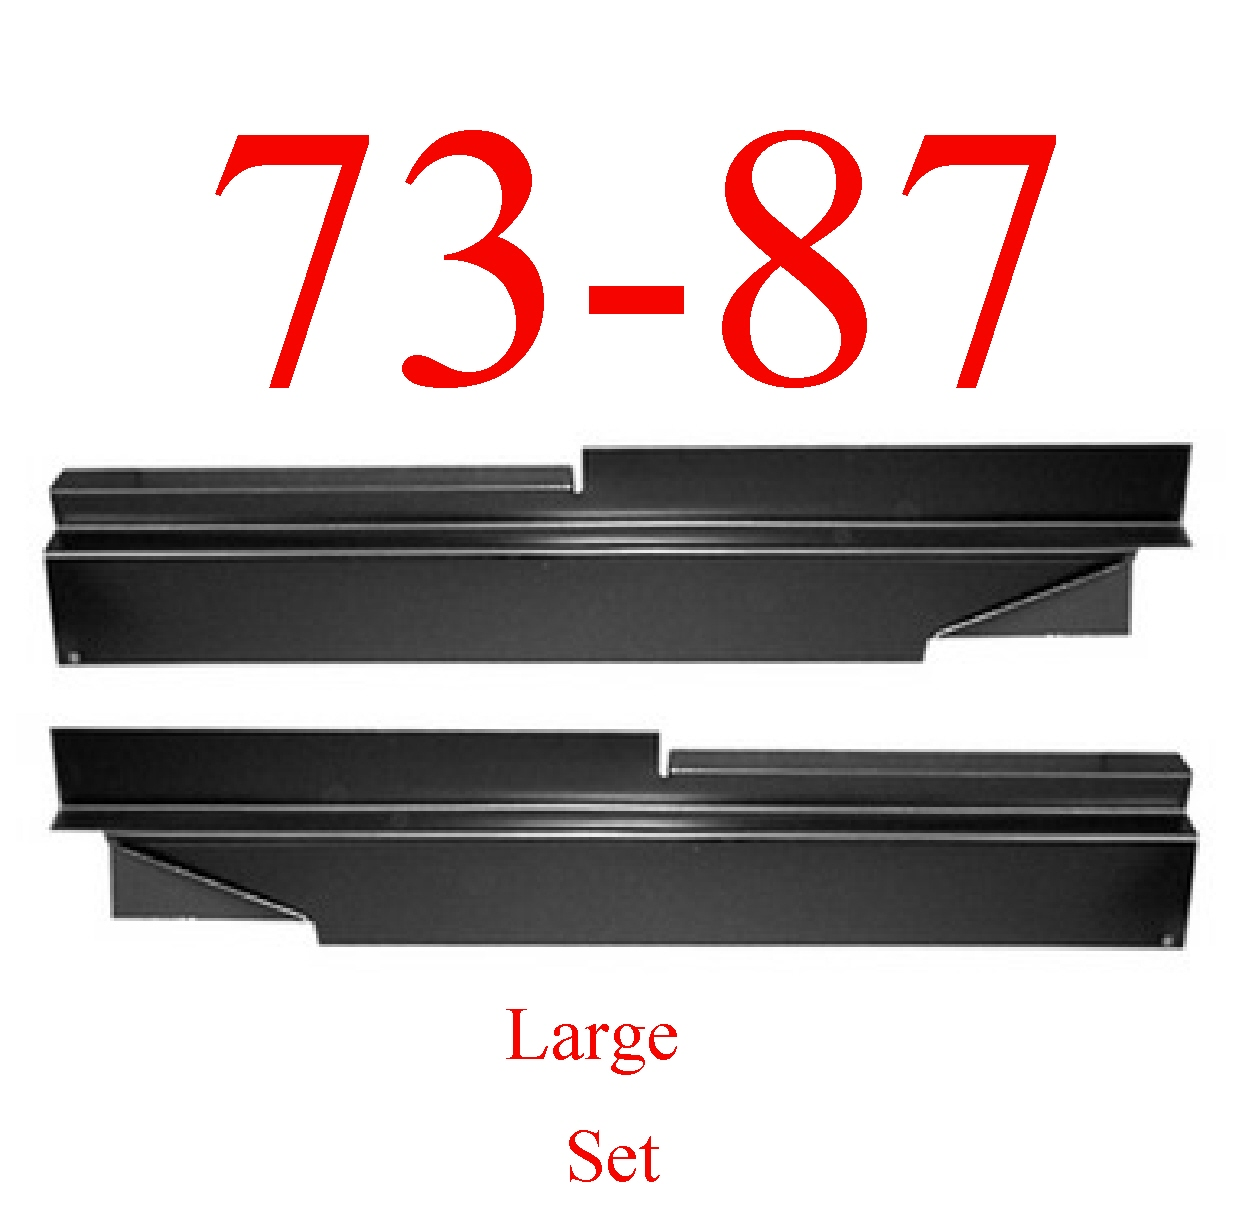 73-87 Chevy Large Inner Rocker Panel Set